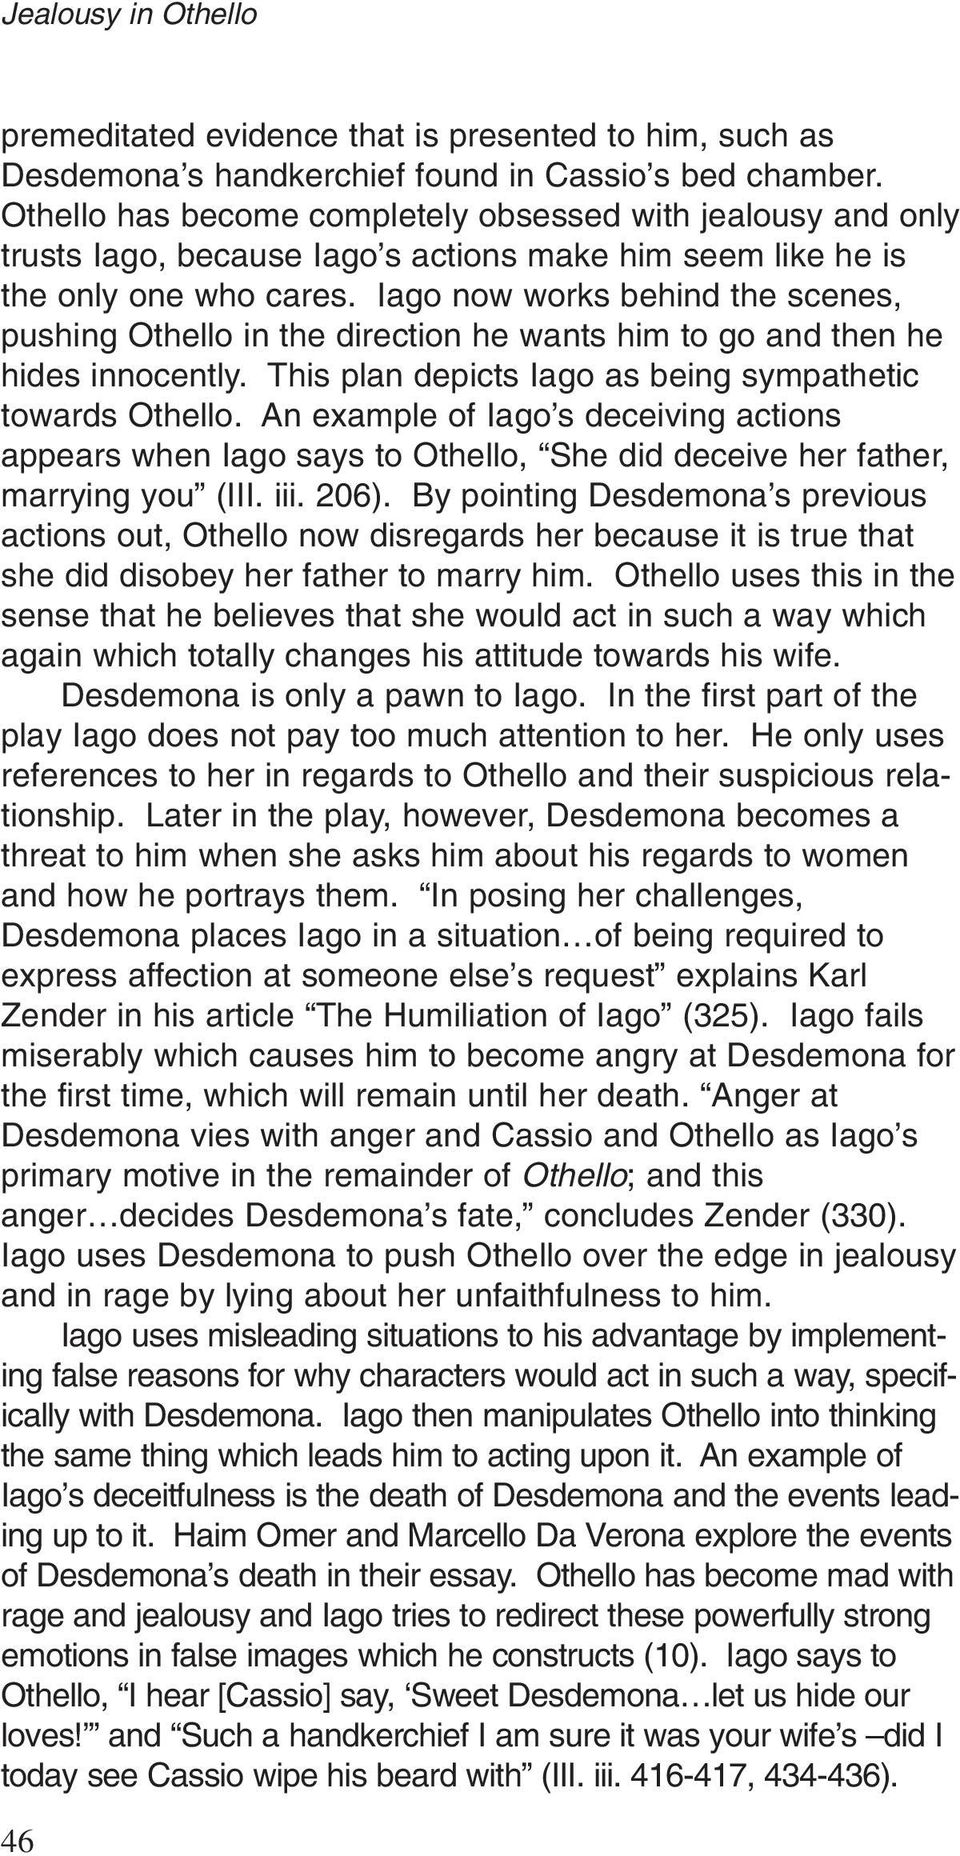 jealousy in othello jennifer putnam pdf iago now works behind the scenes pushing othello in the direction he wants him to